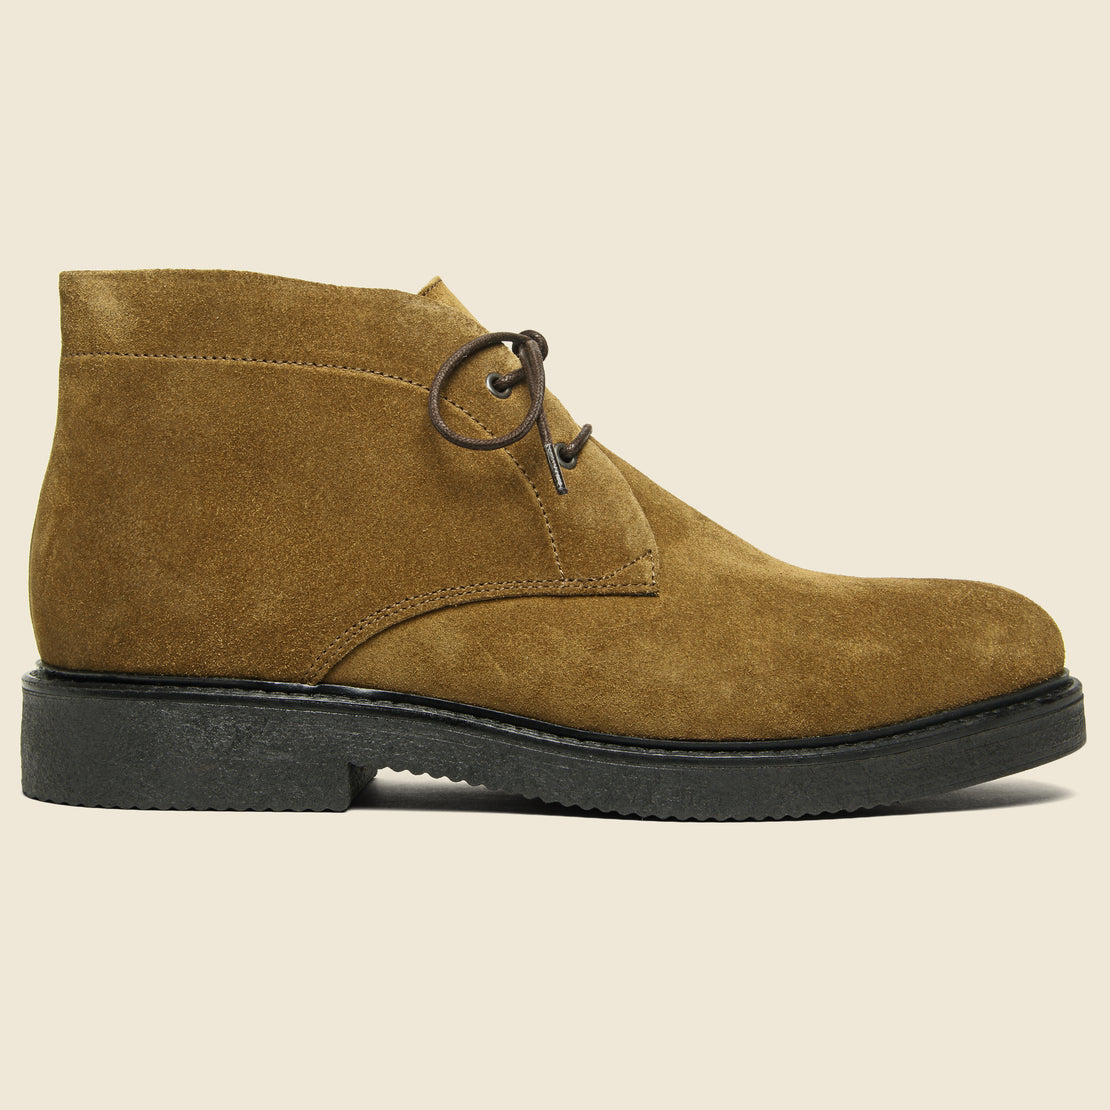 Shoe the Bear Hardy Suede Chukka - Tobacco